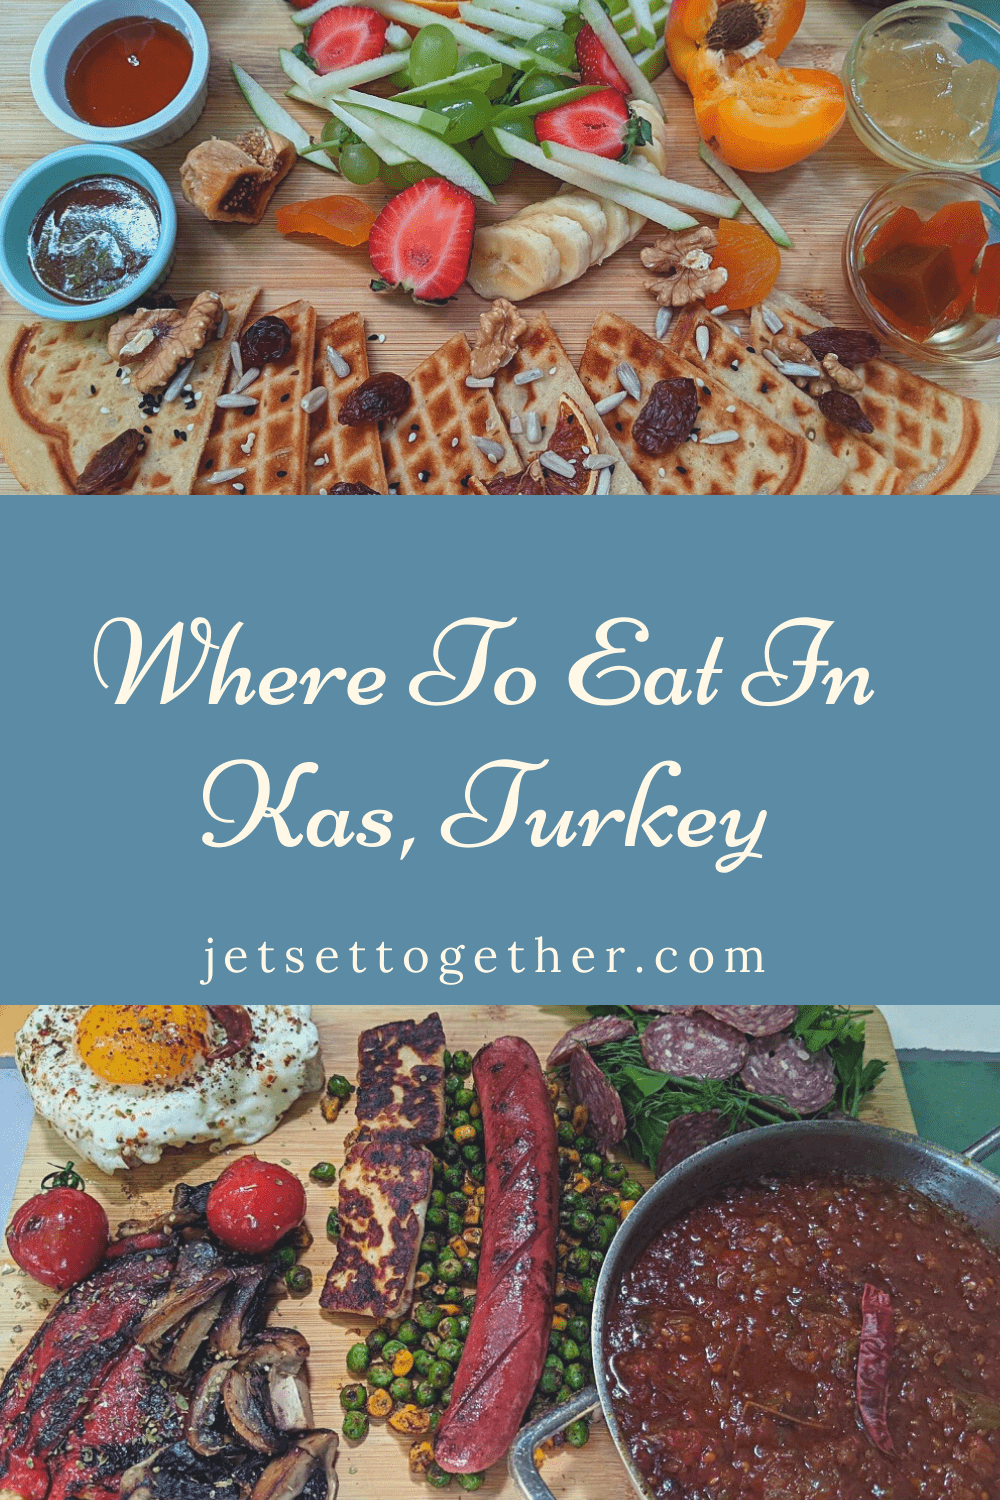 Where To Eat In Kas